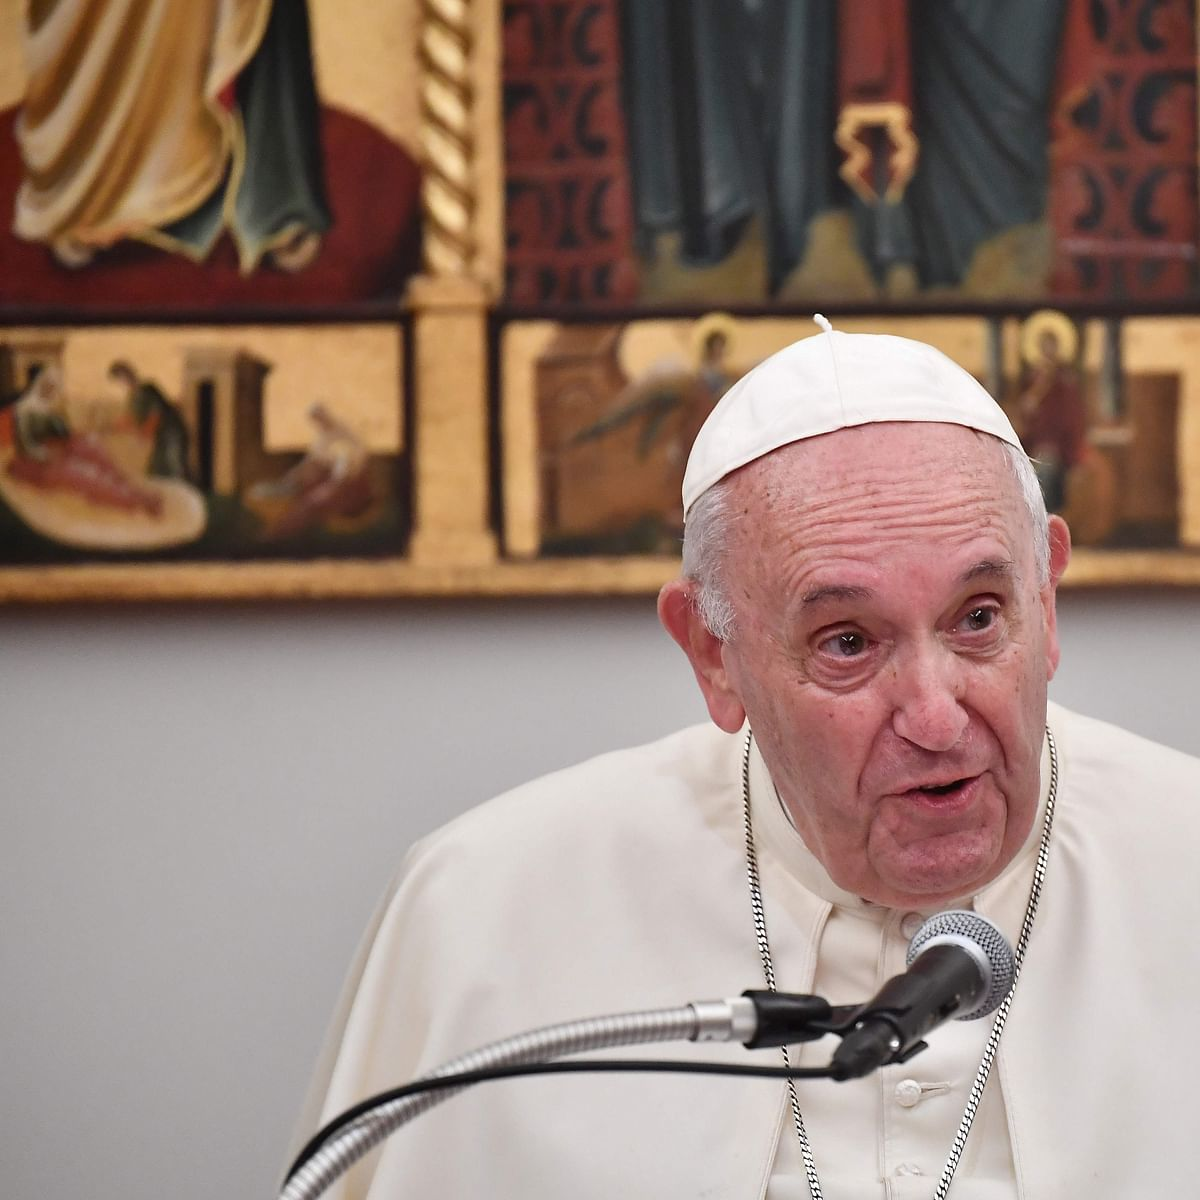 In a first, Pope Francis endorses same-sex civil unions in new documentary film 'Francesco'